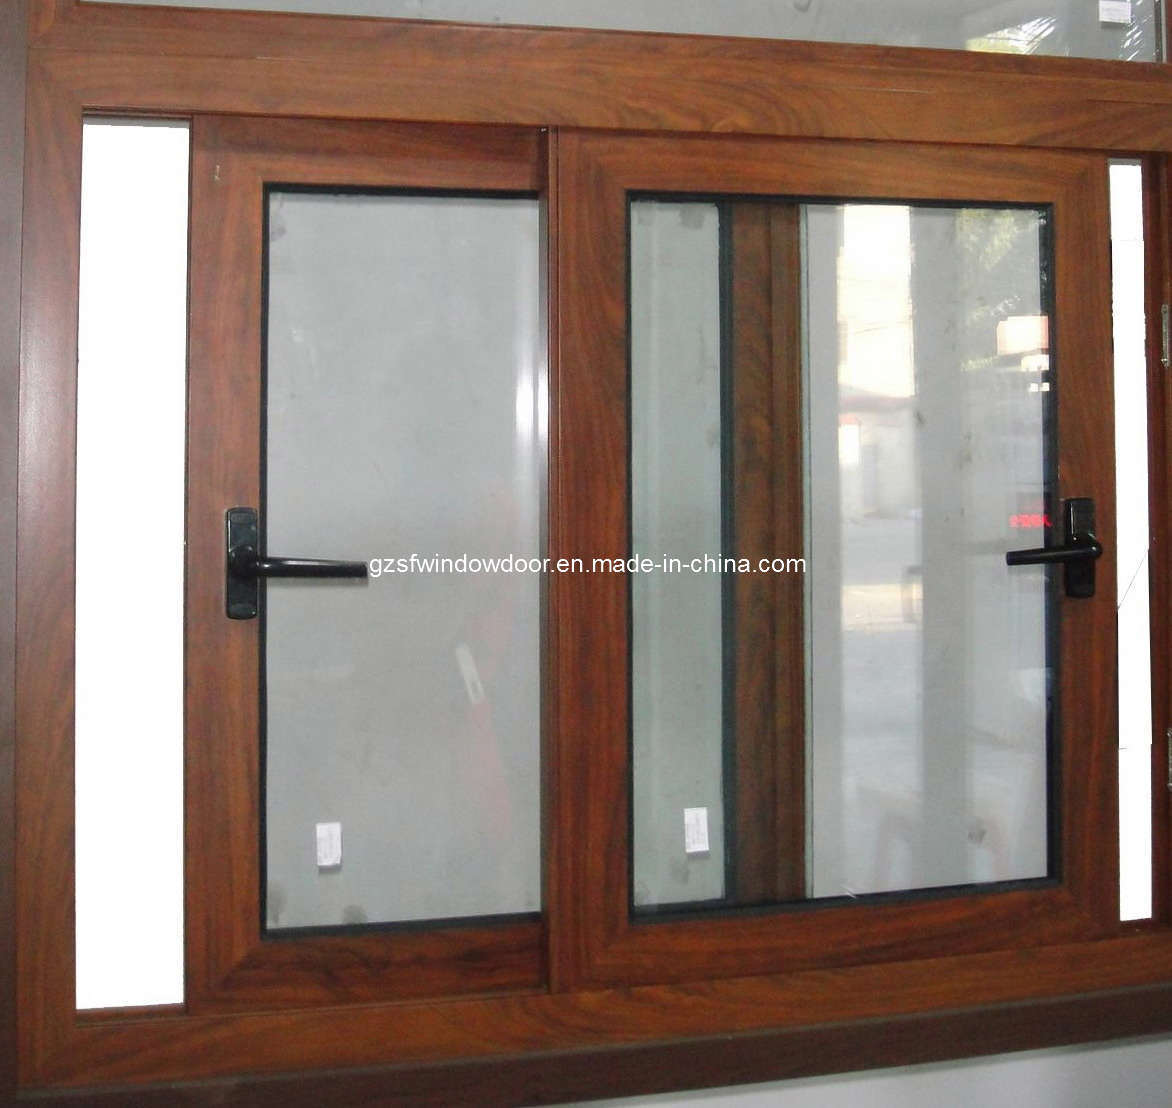 Aluminum Windows Product : China aluminum windows sfaw aluminium sliding